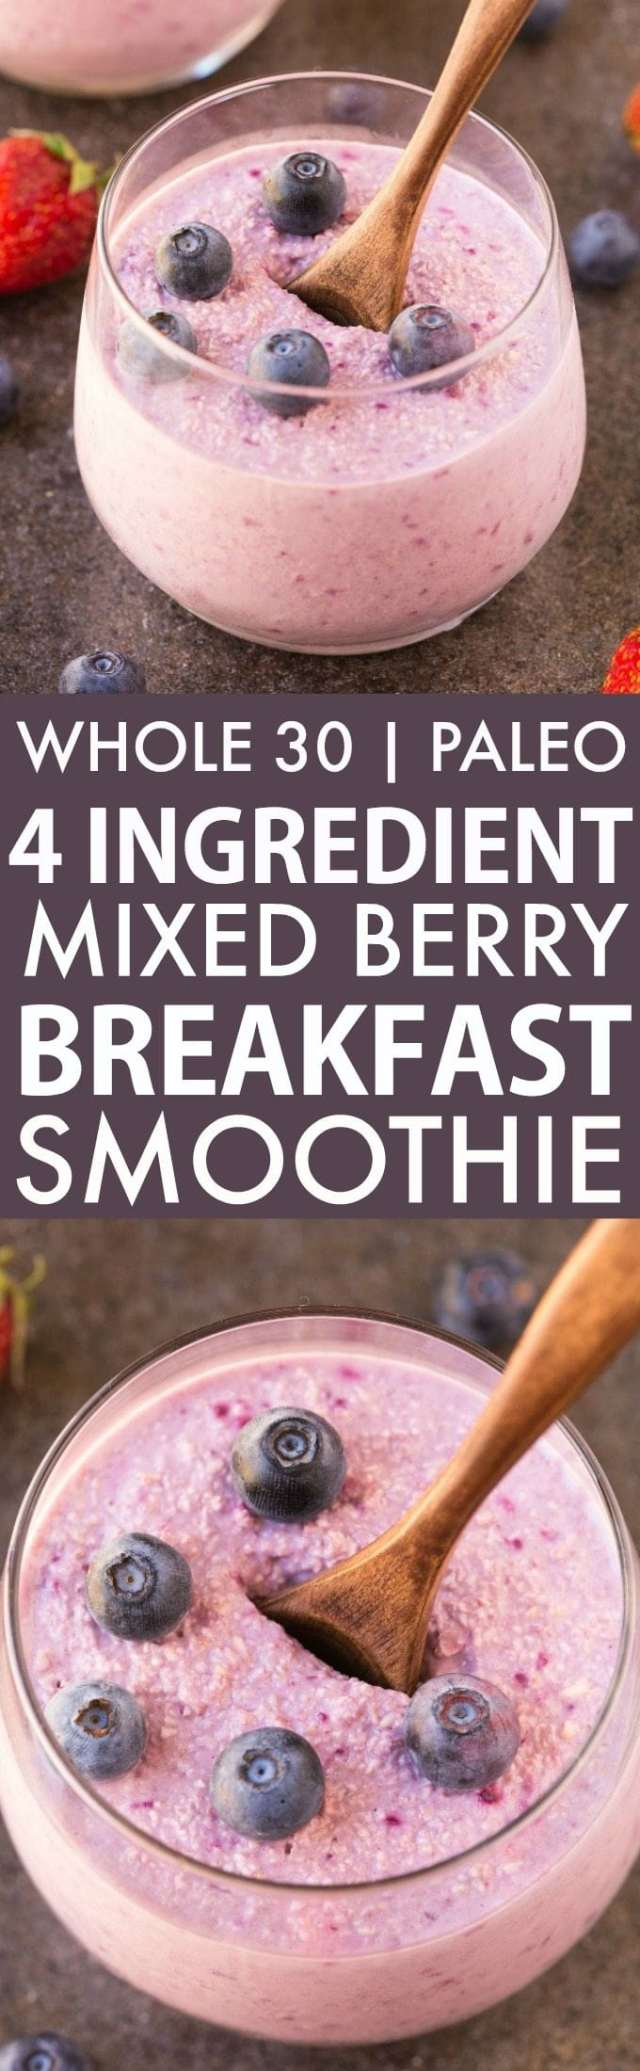 4 Ingredient Mixed Berry Breakfast Smoothie without yogurt, but ultra thick and creamy